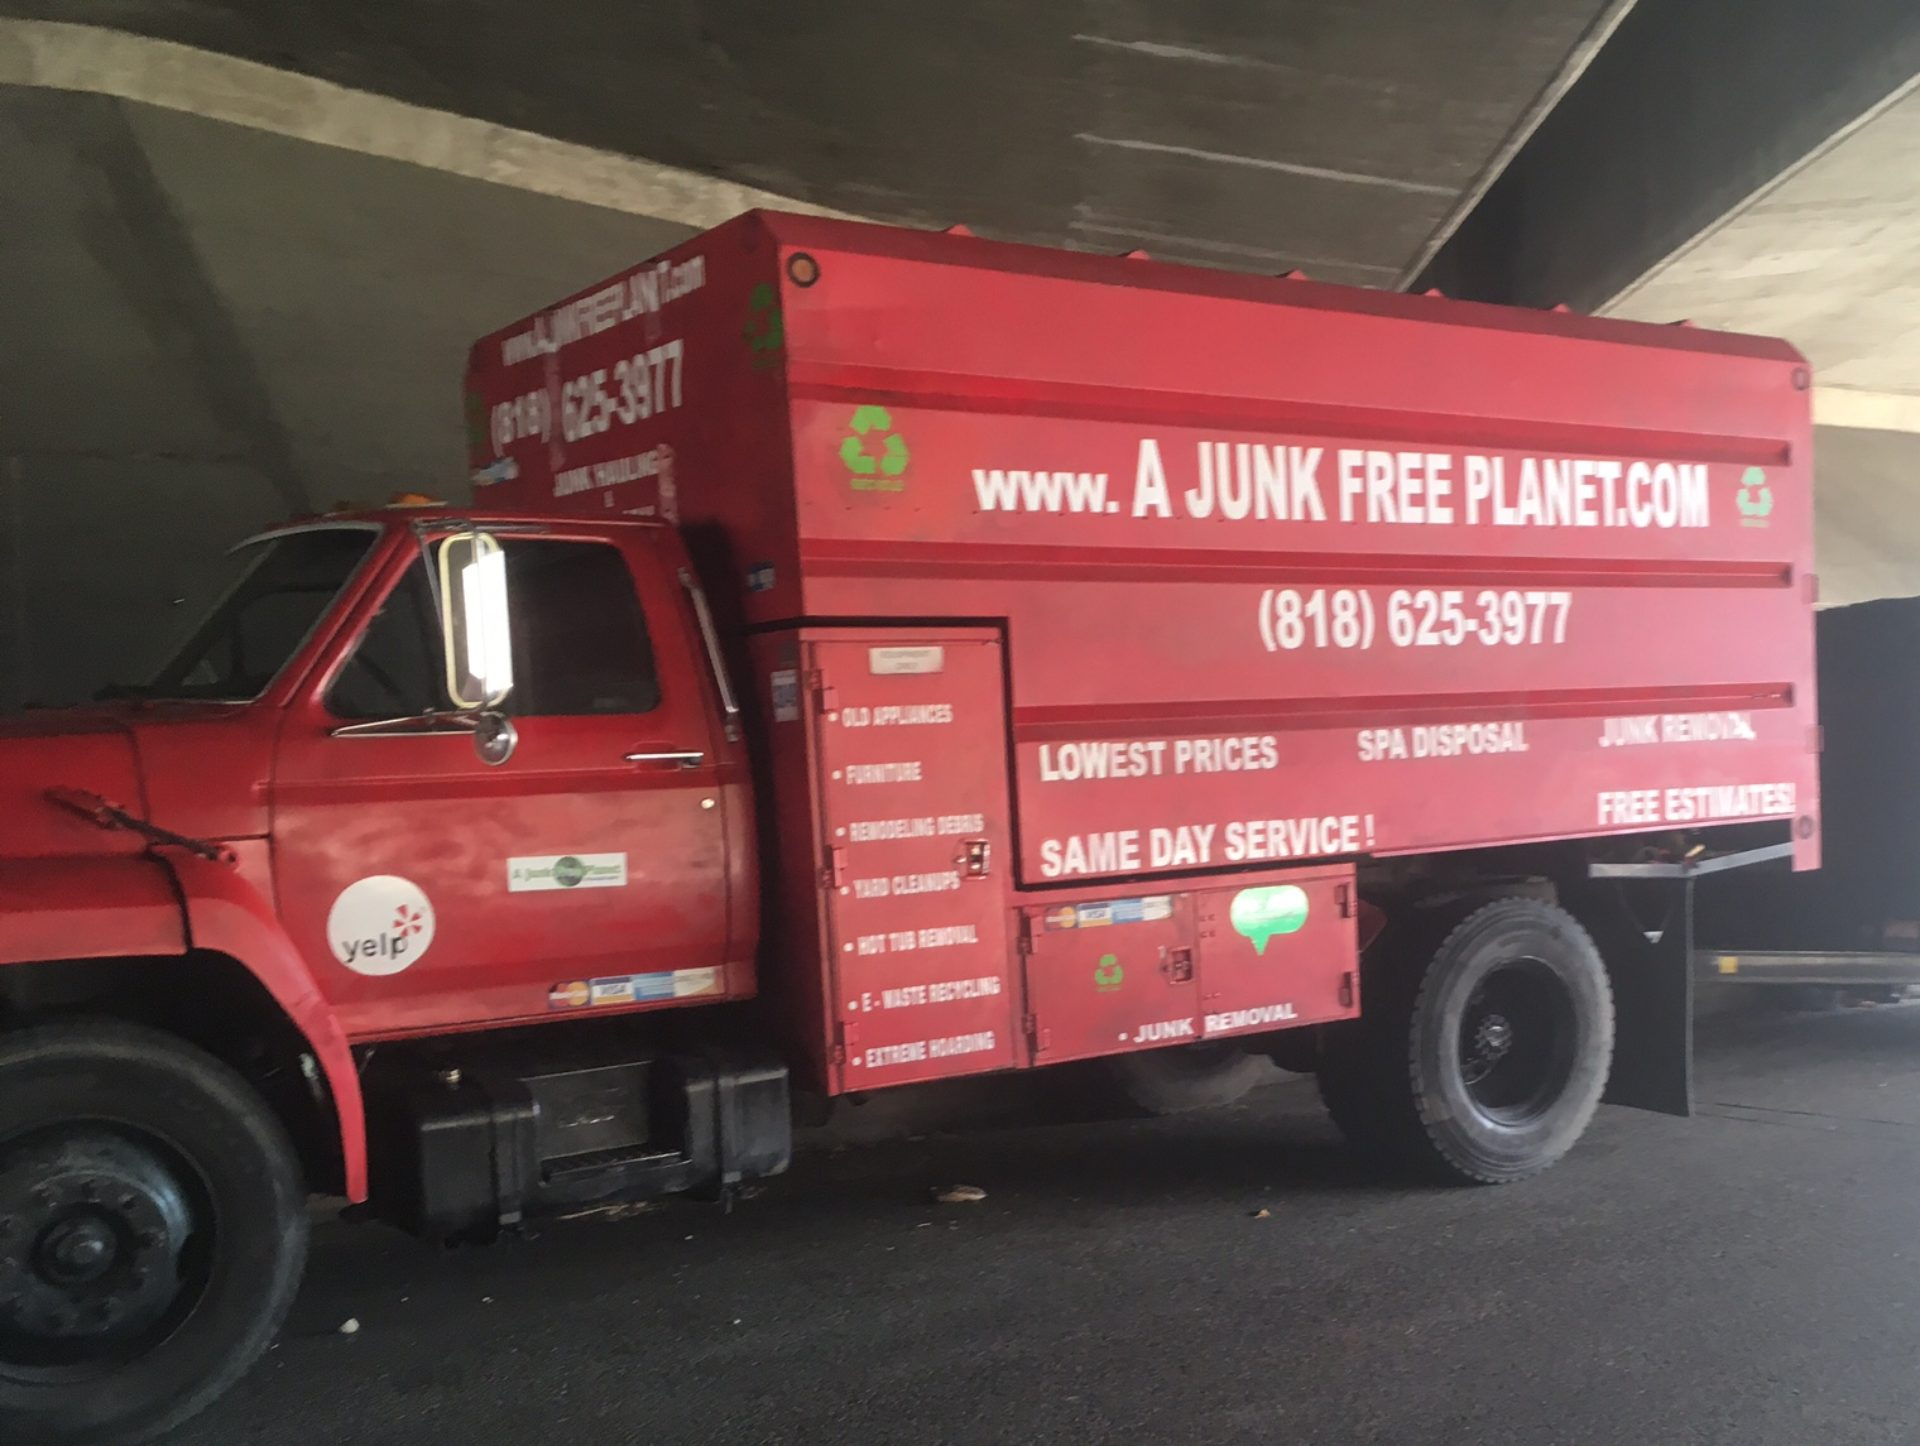 JUNK HAULING, JUNK REMOVAL, HOT TUBS & SPA REMOVAL A JUNK FREE PLANET